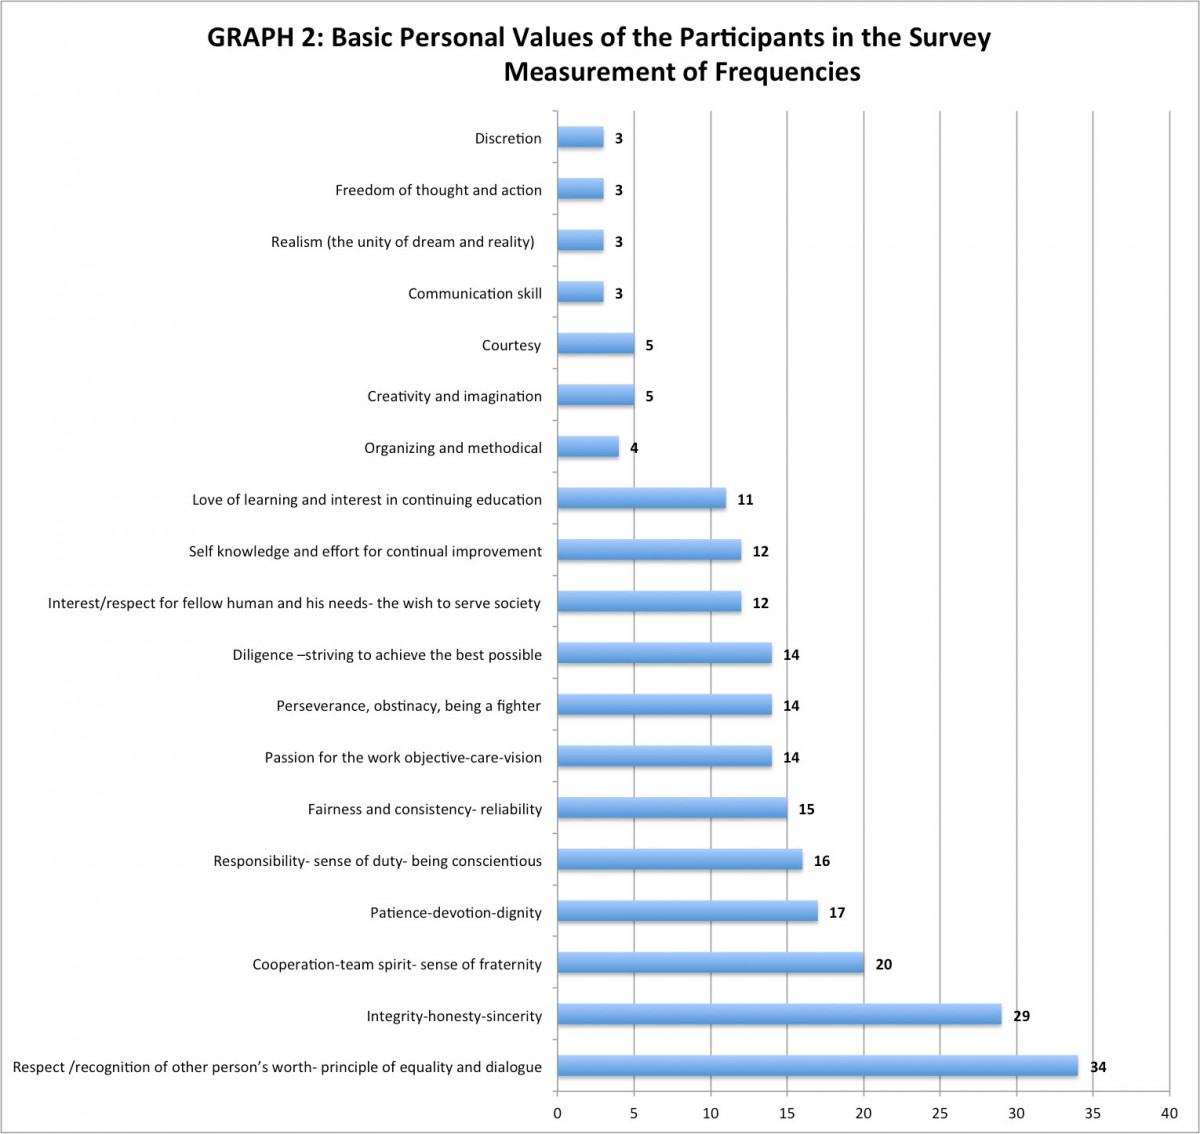 Fig. 5. Graph 2: Basic personal values of the participants in the survey. Frequency measurements (processed by M. Mouliou).